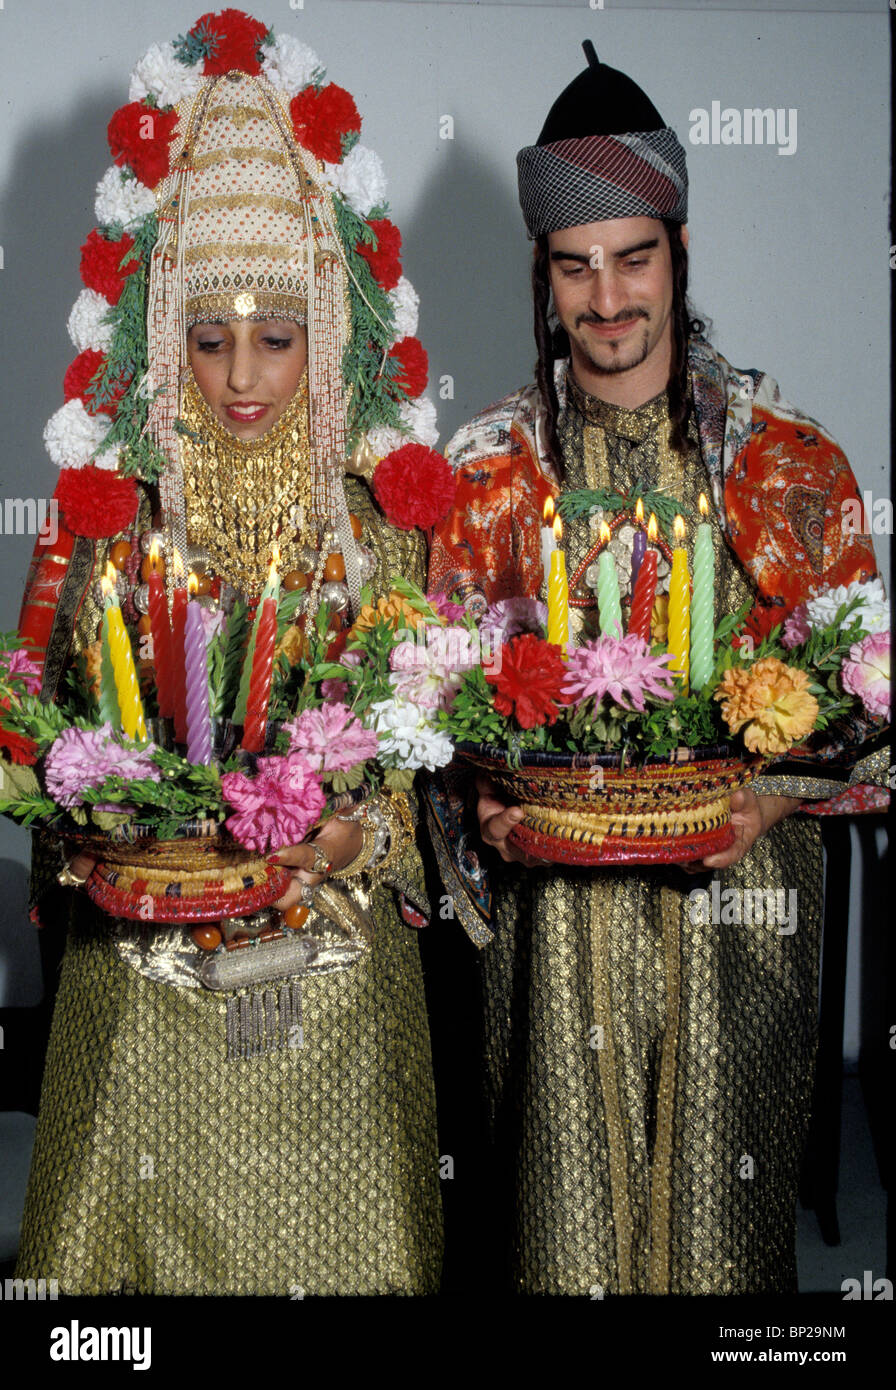 Yemenite Bride Stock Photos Yemenite Bride Stock Images Alamy